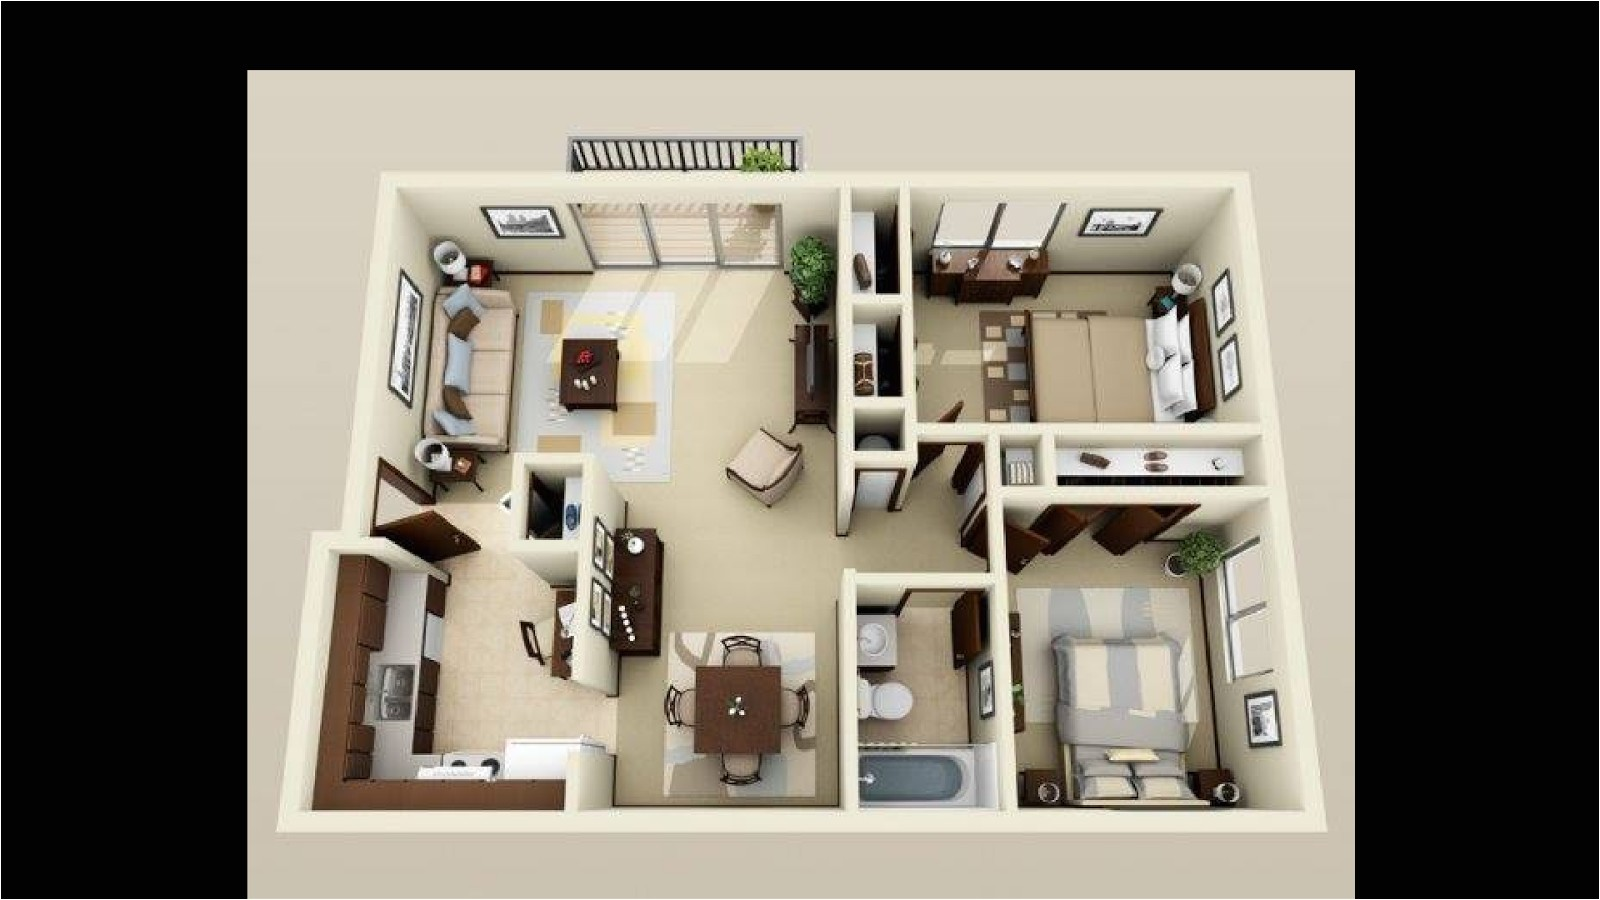 com luckmobile housedesign3d